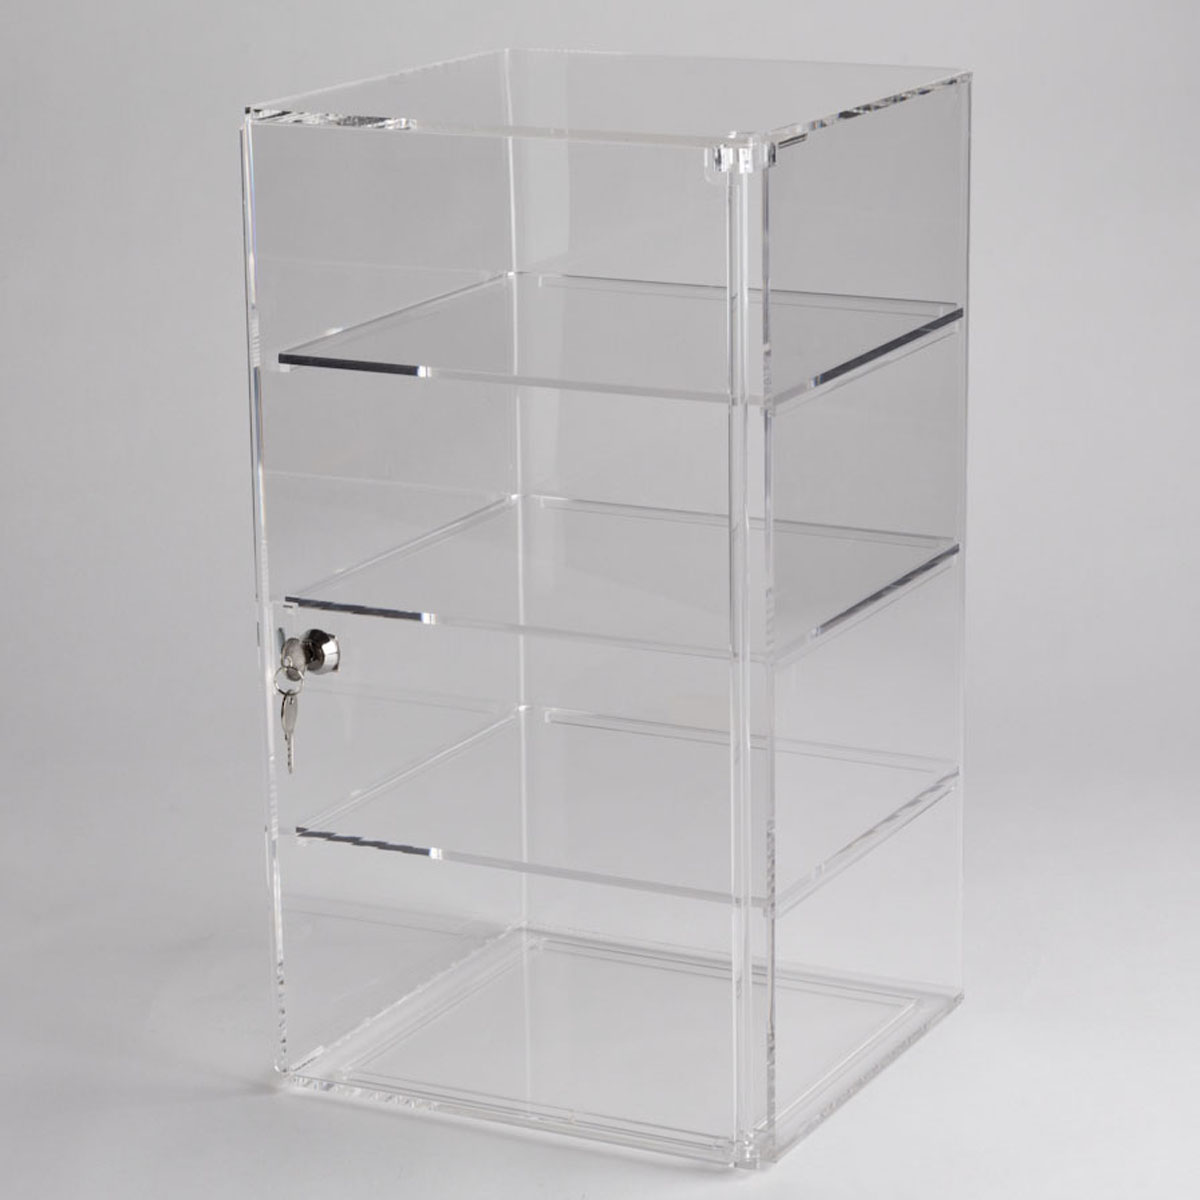 acrylic counter top tower display case a b store fixtures rh abfixtures com